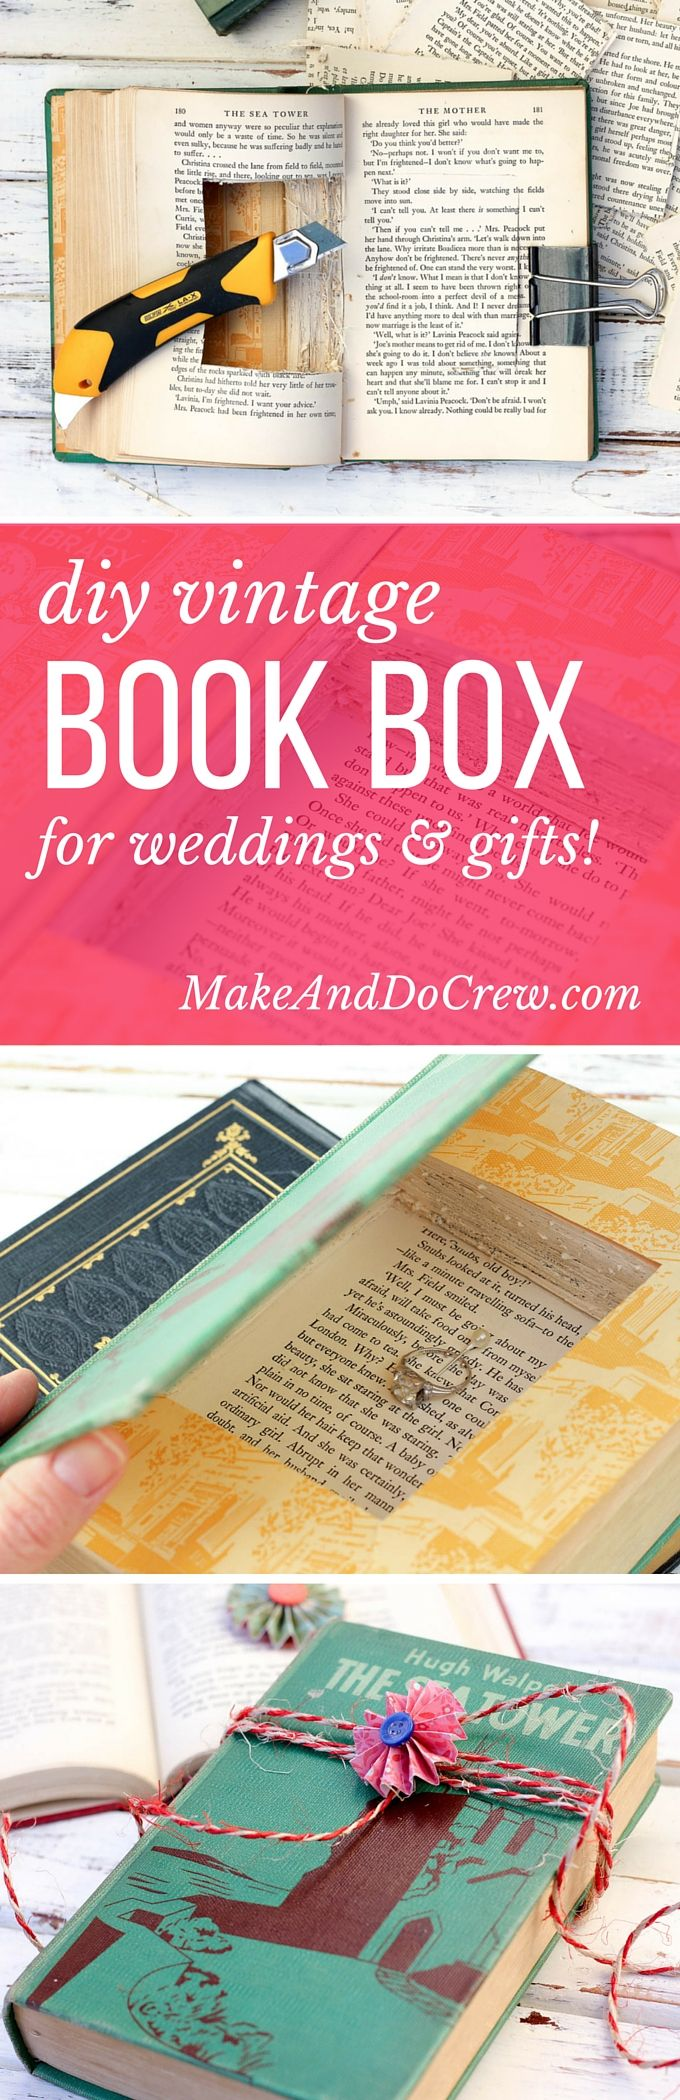 Best 25 diy gift box ideas on pinterest gift boxes diy box and diy gift box made from a vintage book solutioingenieria Image collections